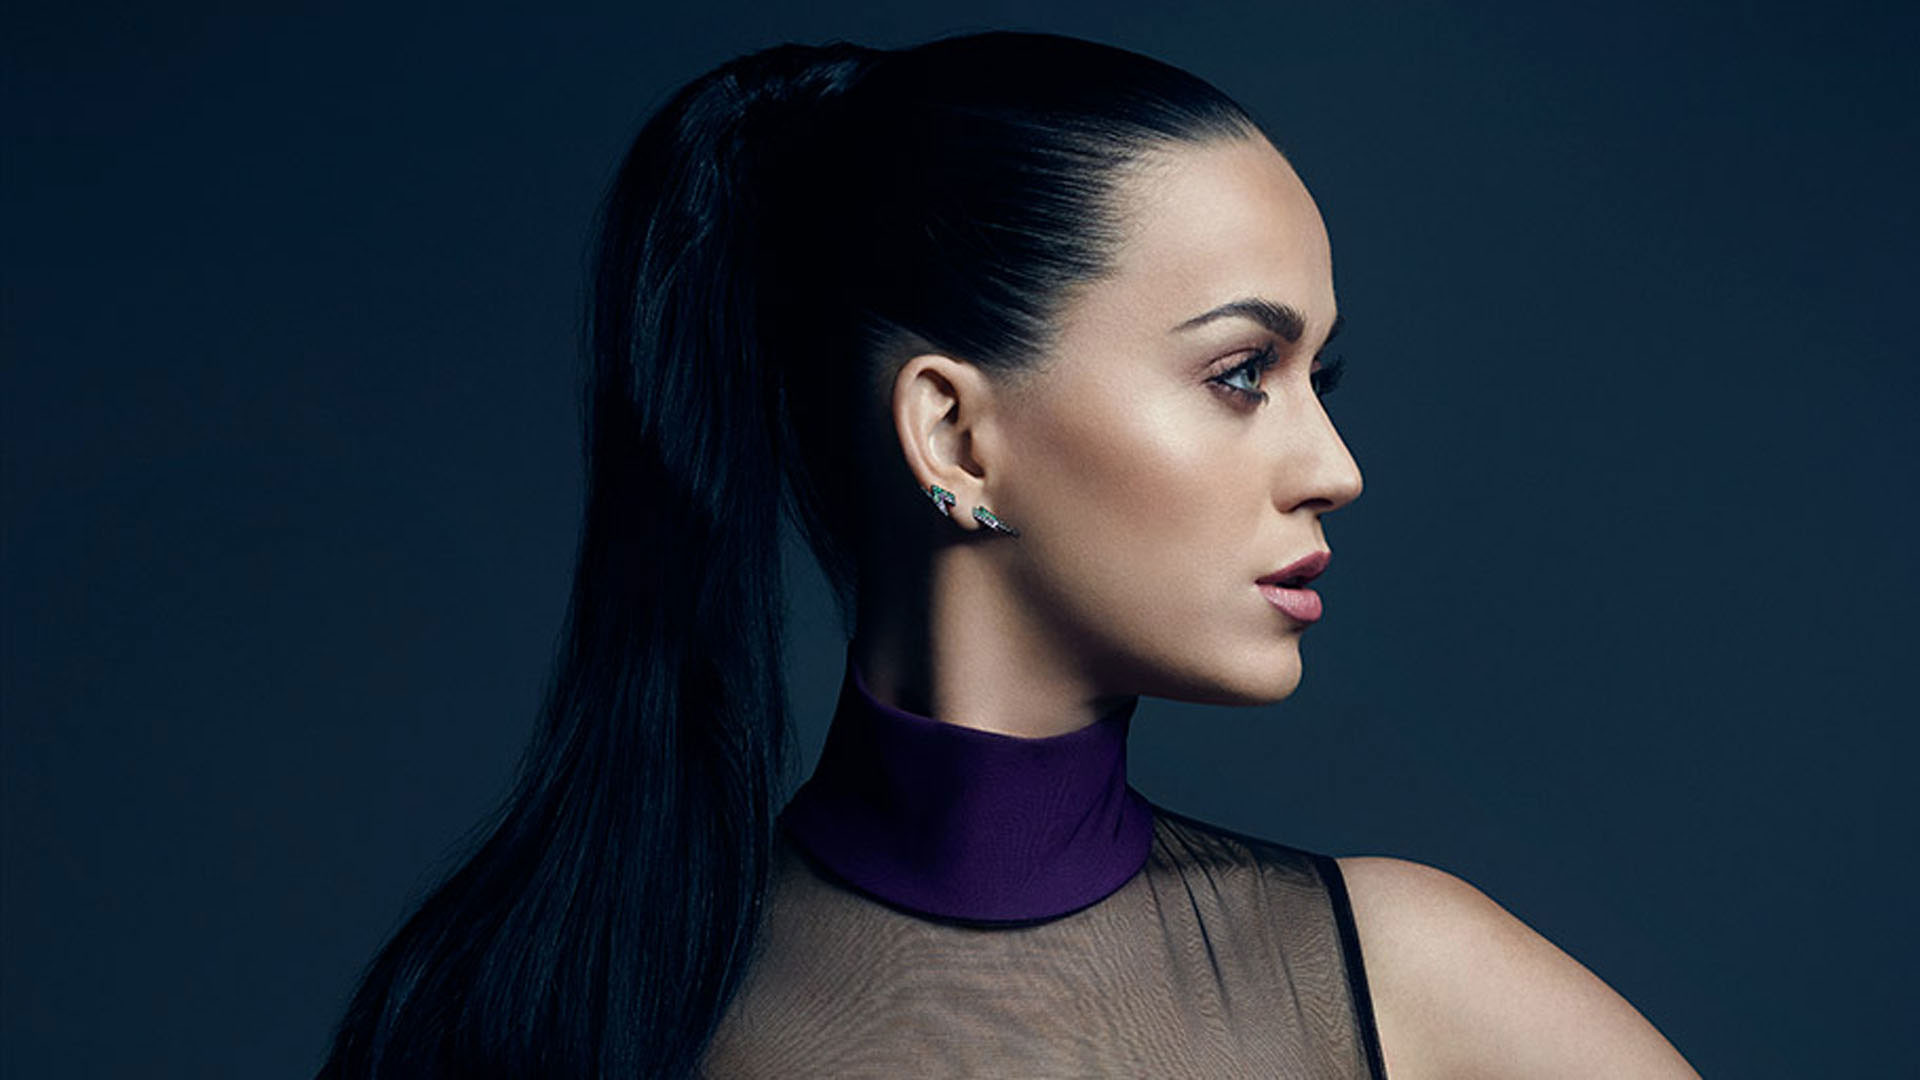 Katy Perry 1080p Wallpaper 76 Images